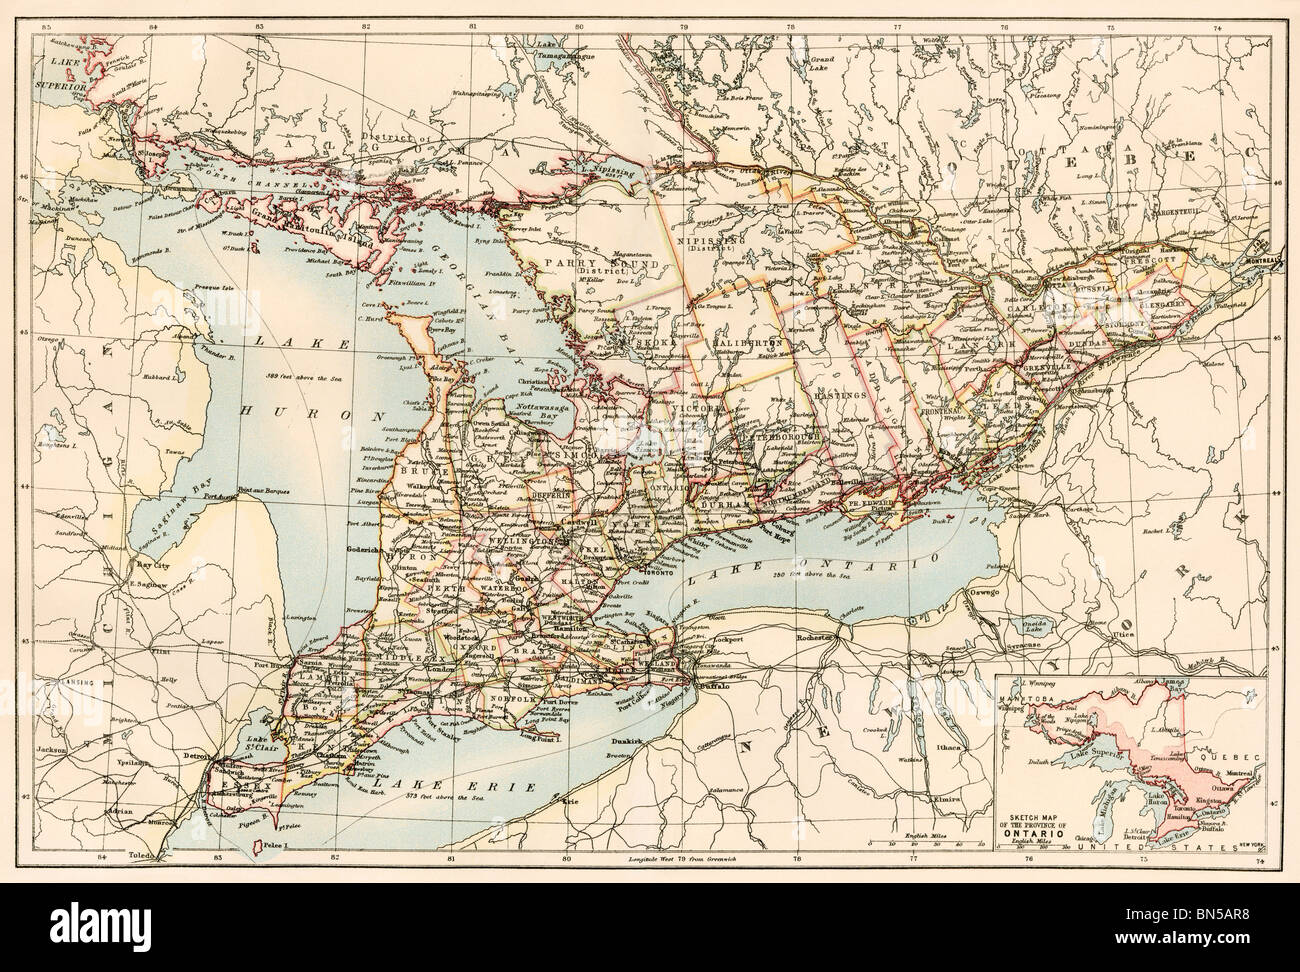 Onterio Canada Map.Map Of Ontario Canada 1870s Color Lithograph Stock Photo